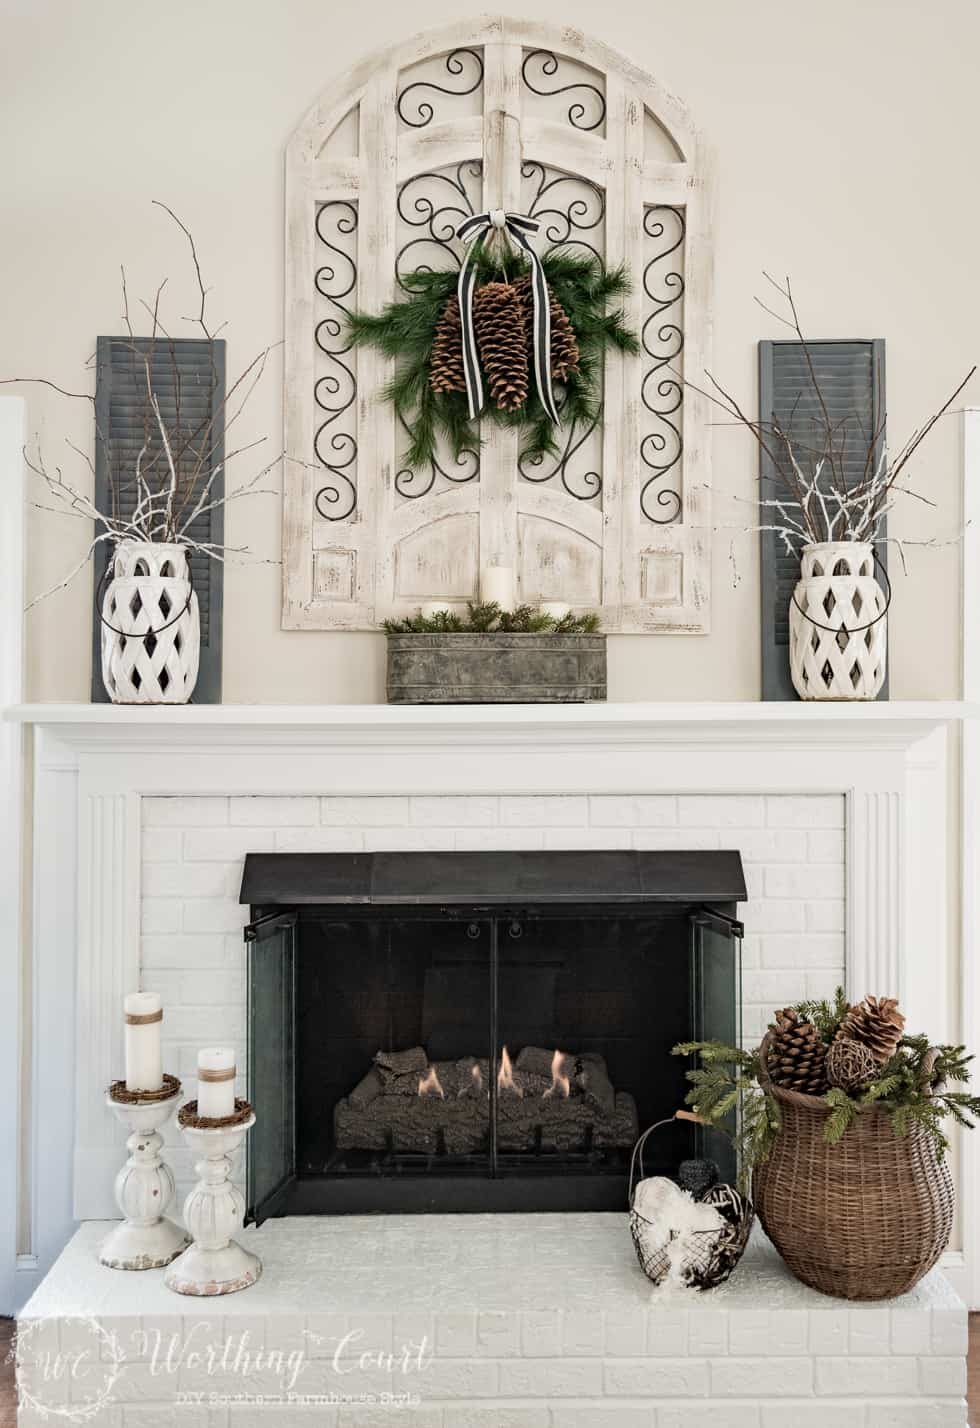 My Winter Fireplace Mantel And Hearth || Worthing Court